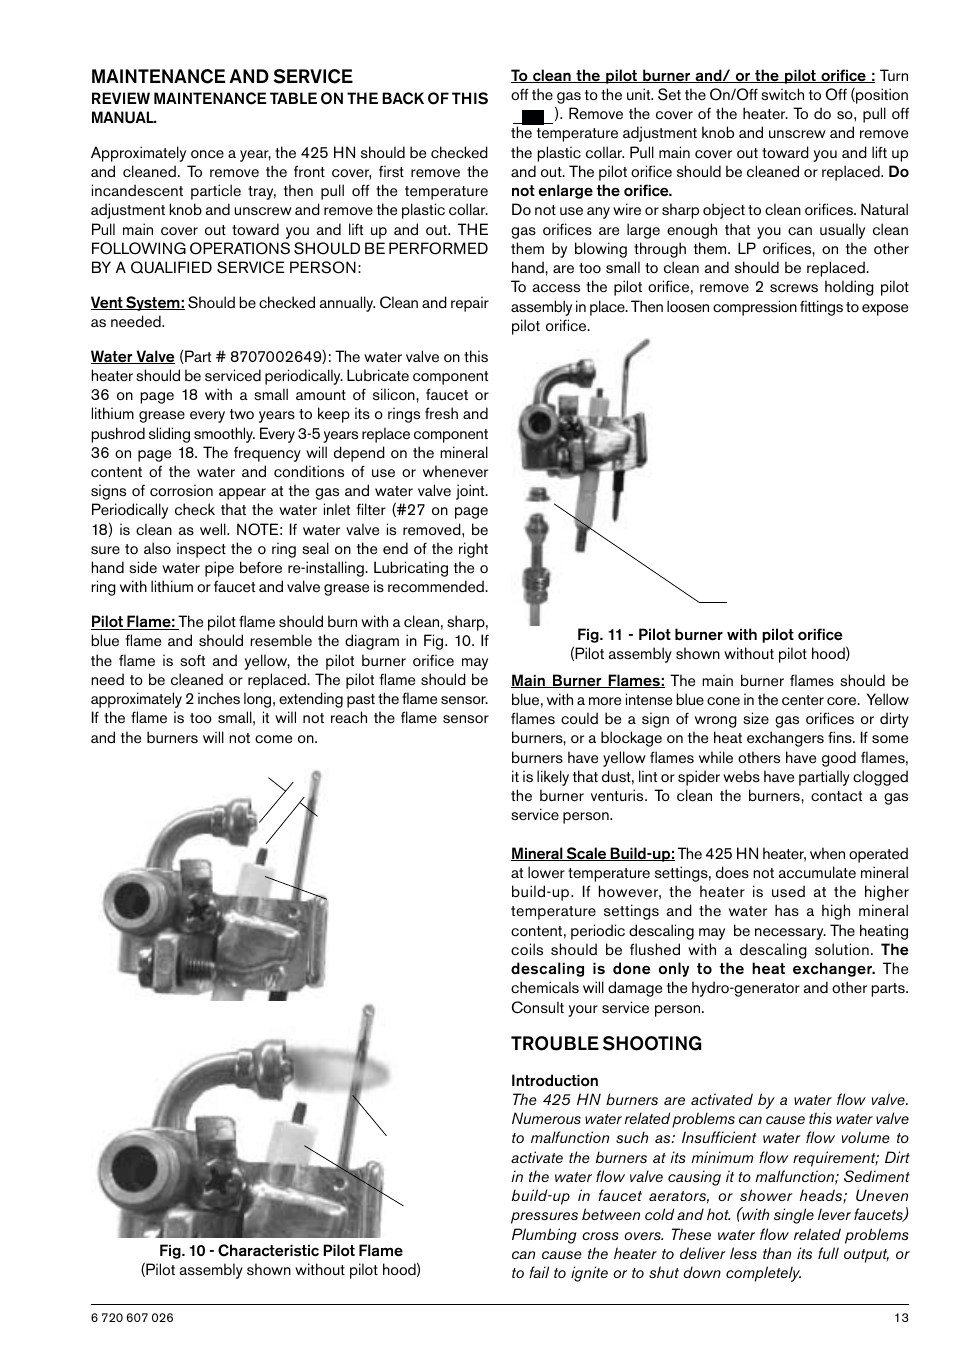 Maintenance And Service Trouble Shooting Bosch Gwh 425 Hn User Clean Burn Burner Wiring Diagram Manual Page 13 24